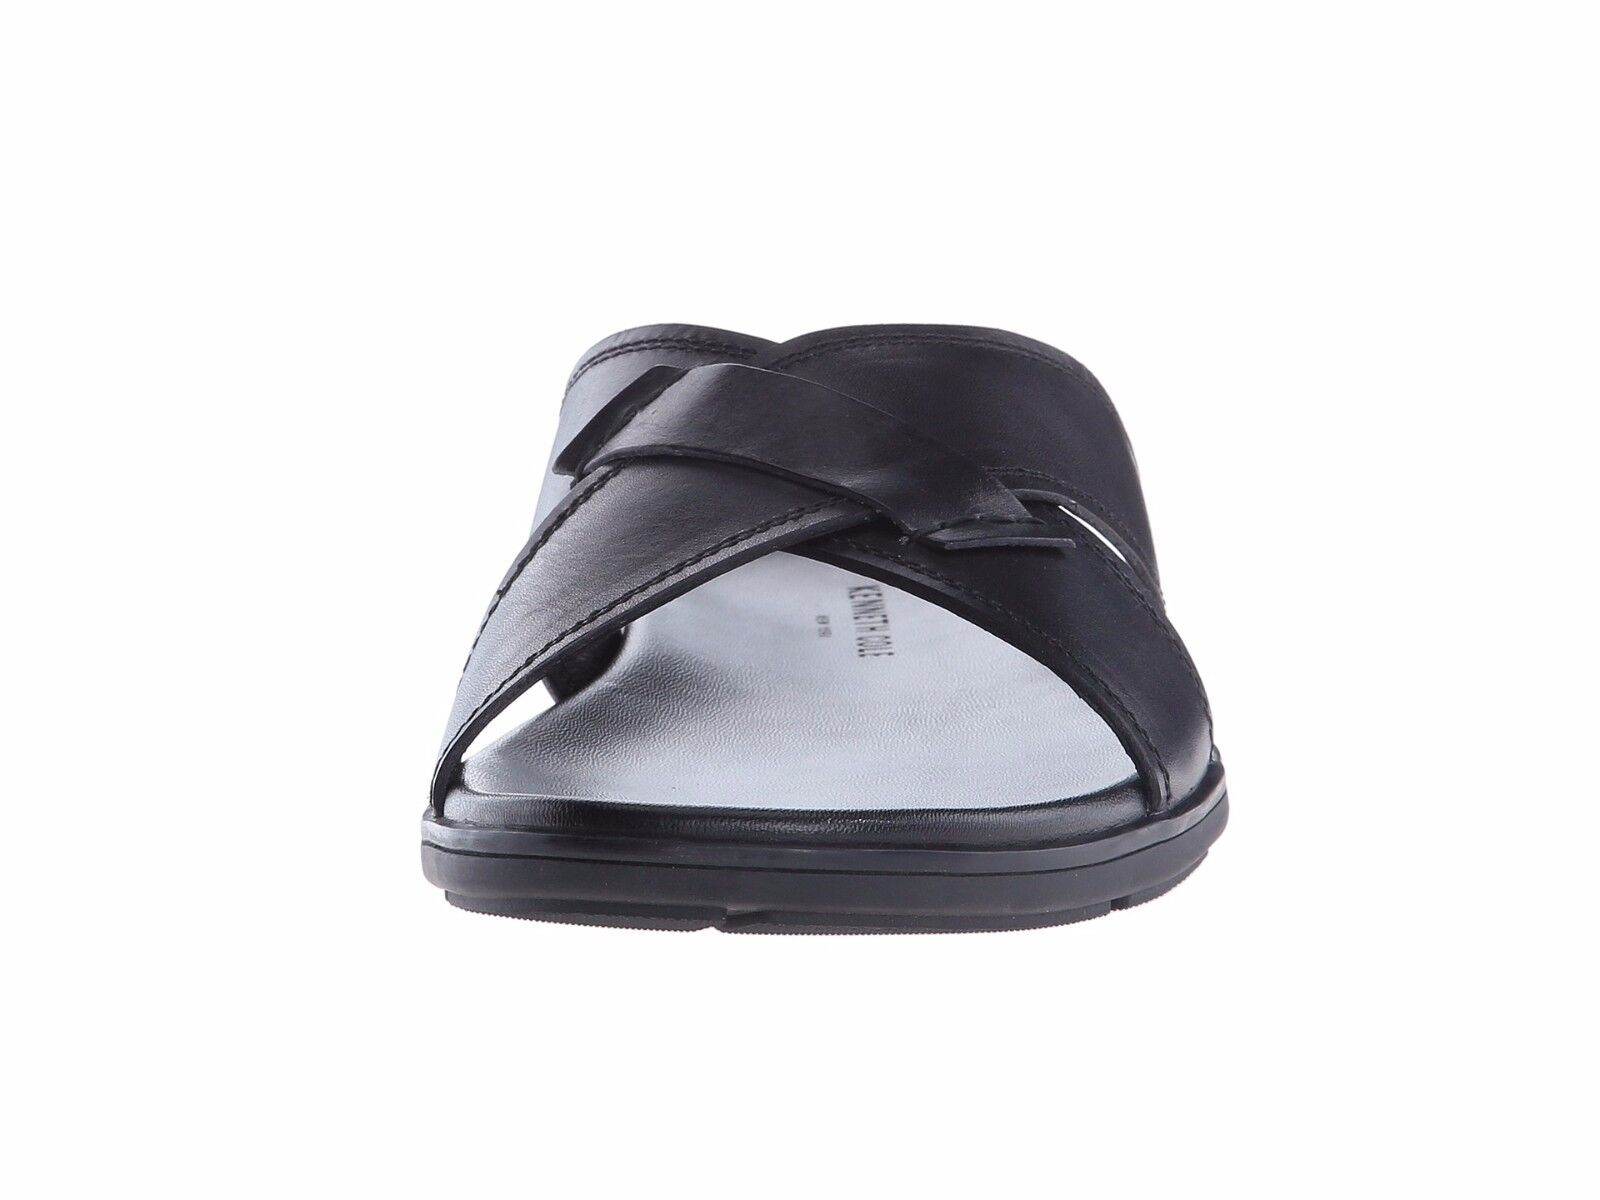 Men's shoes Kenneth Cole Lite N Up Leather Leather Leather Slide Sandals KMS6LE058 Black New 148e7e